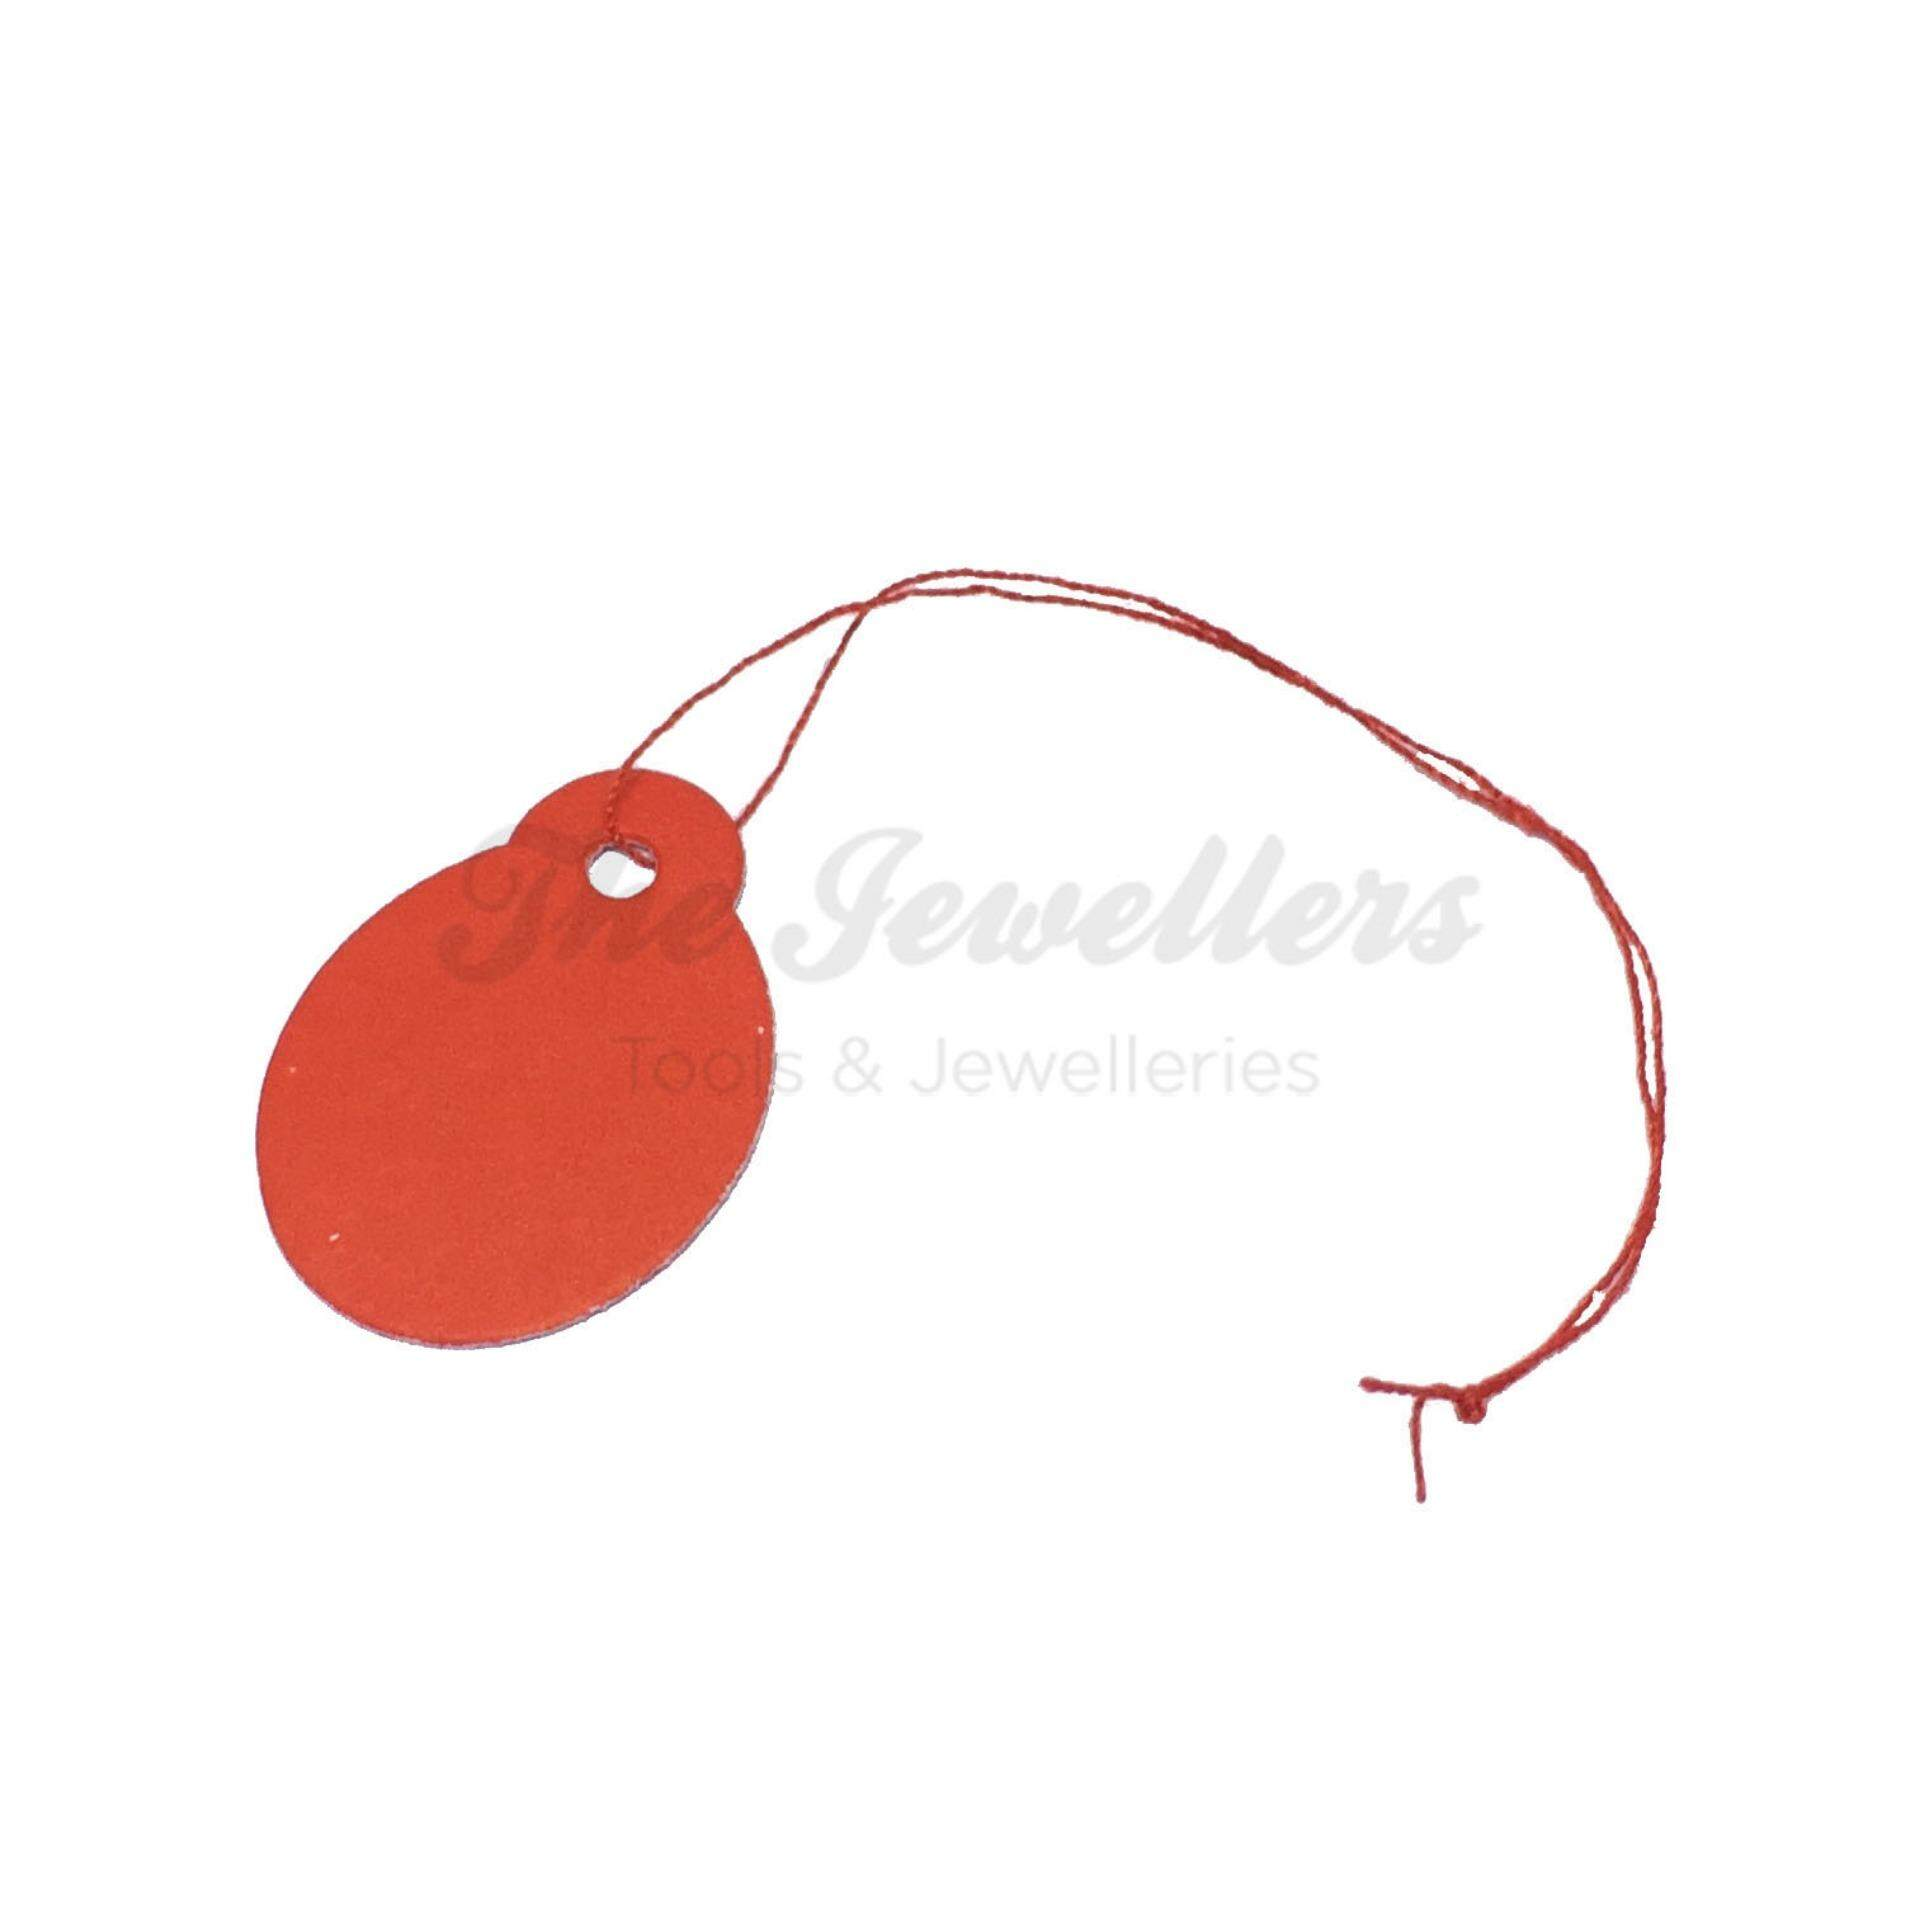 450+-pcs Oval Shape Red Colour Jewellery Price Tag with Thin Red Thread